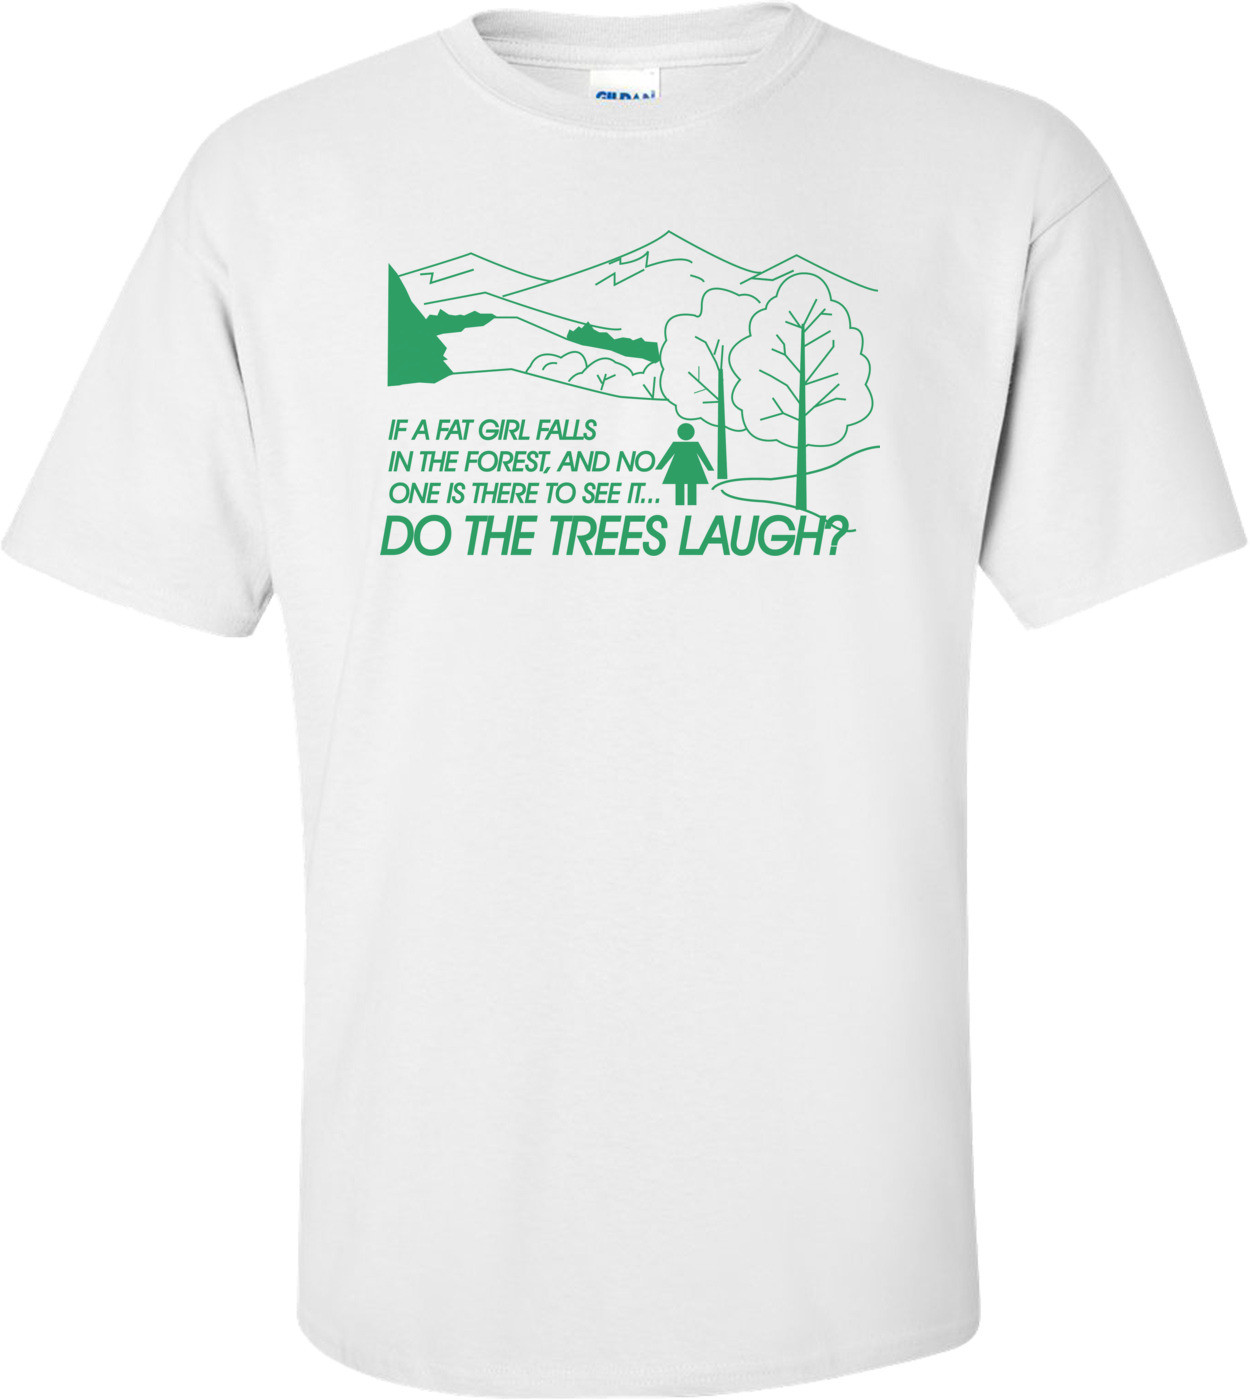 If A Fat Girl Falls In The Forest, And No One Is There To See It...do The Trees Laugh T-shirt